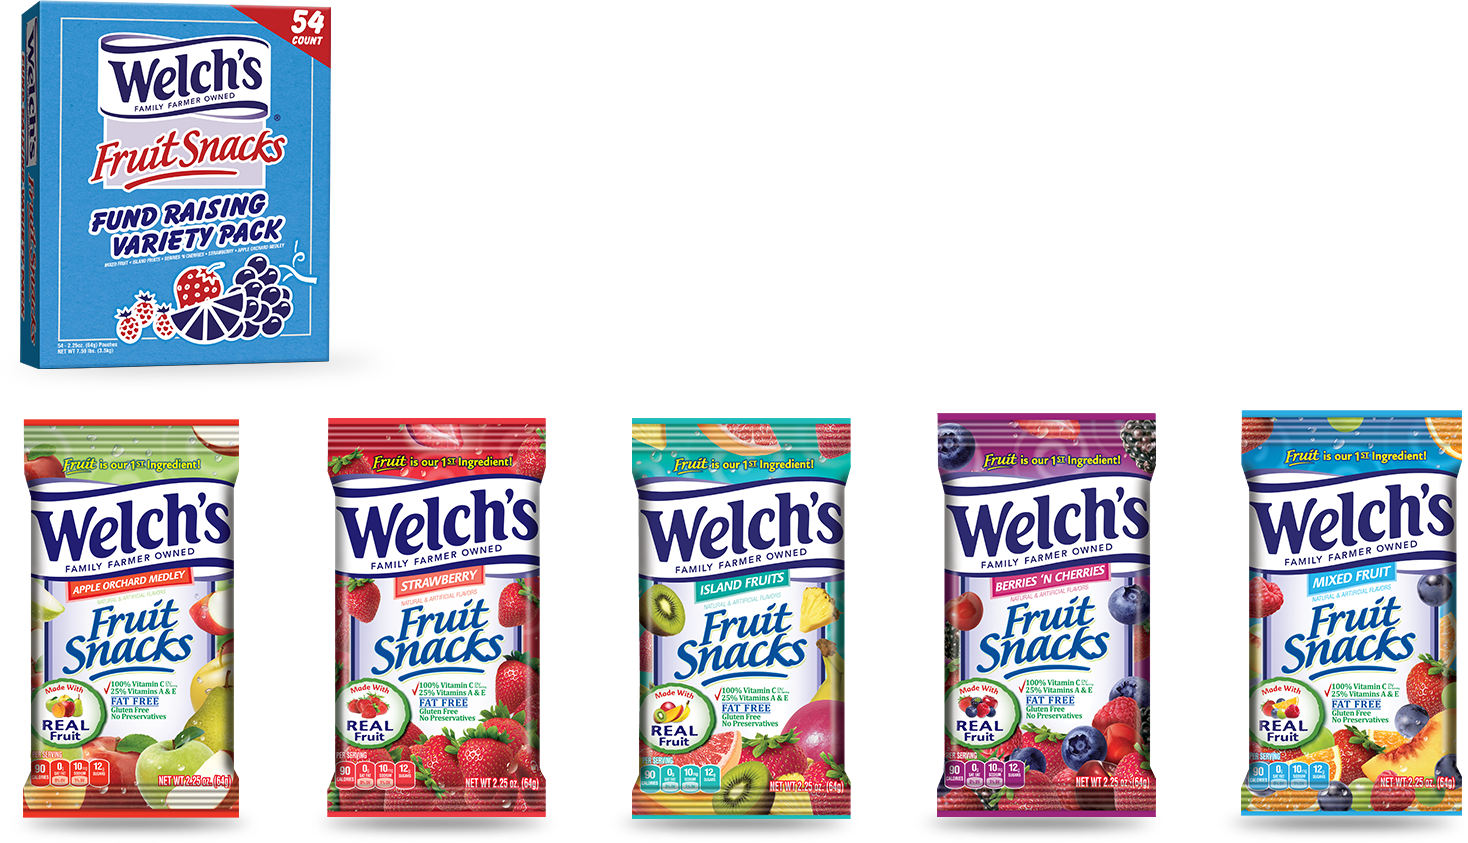 welch's packs